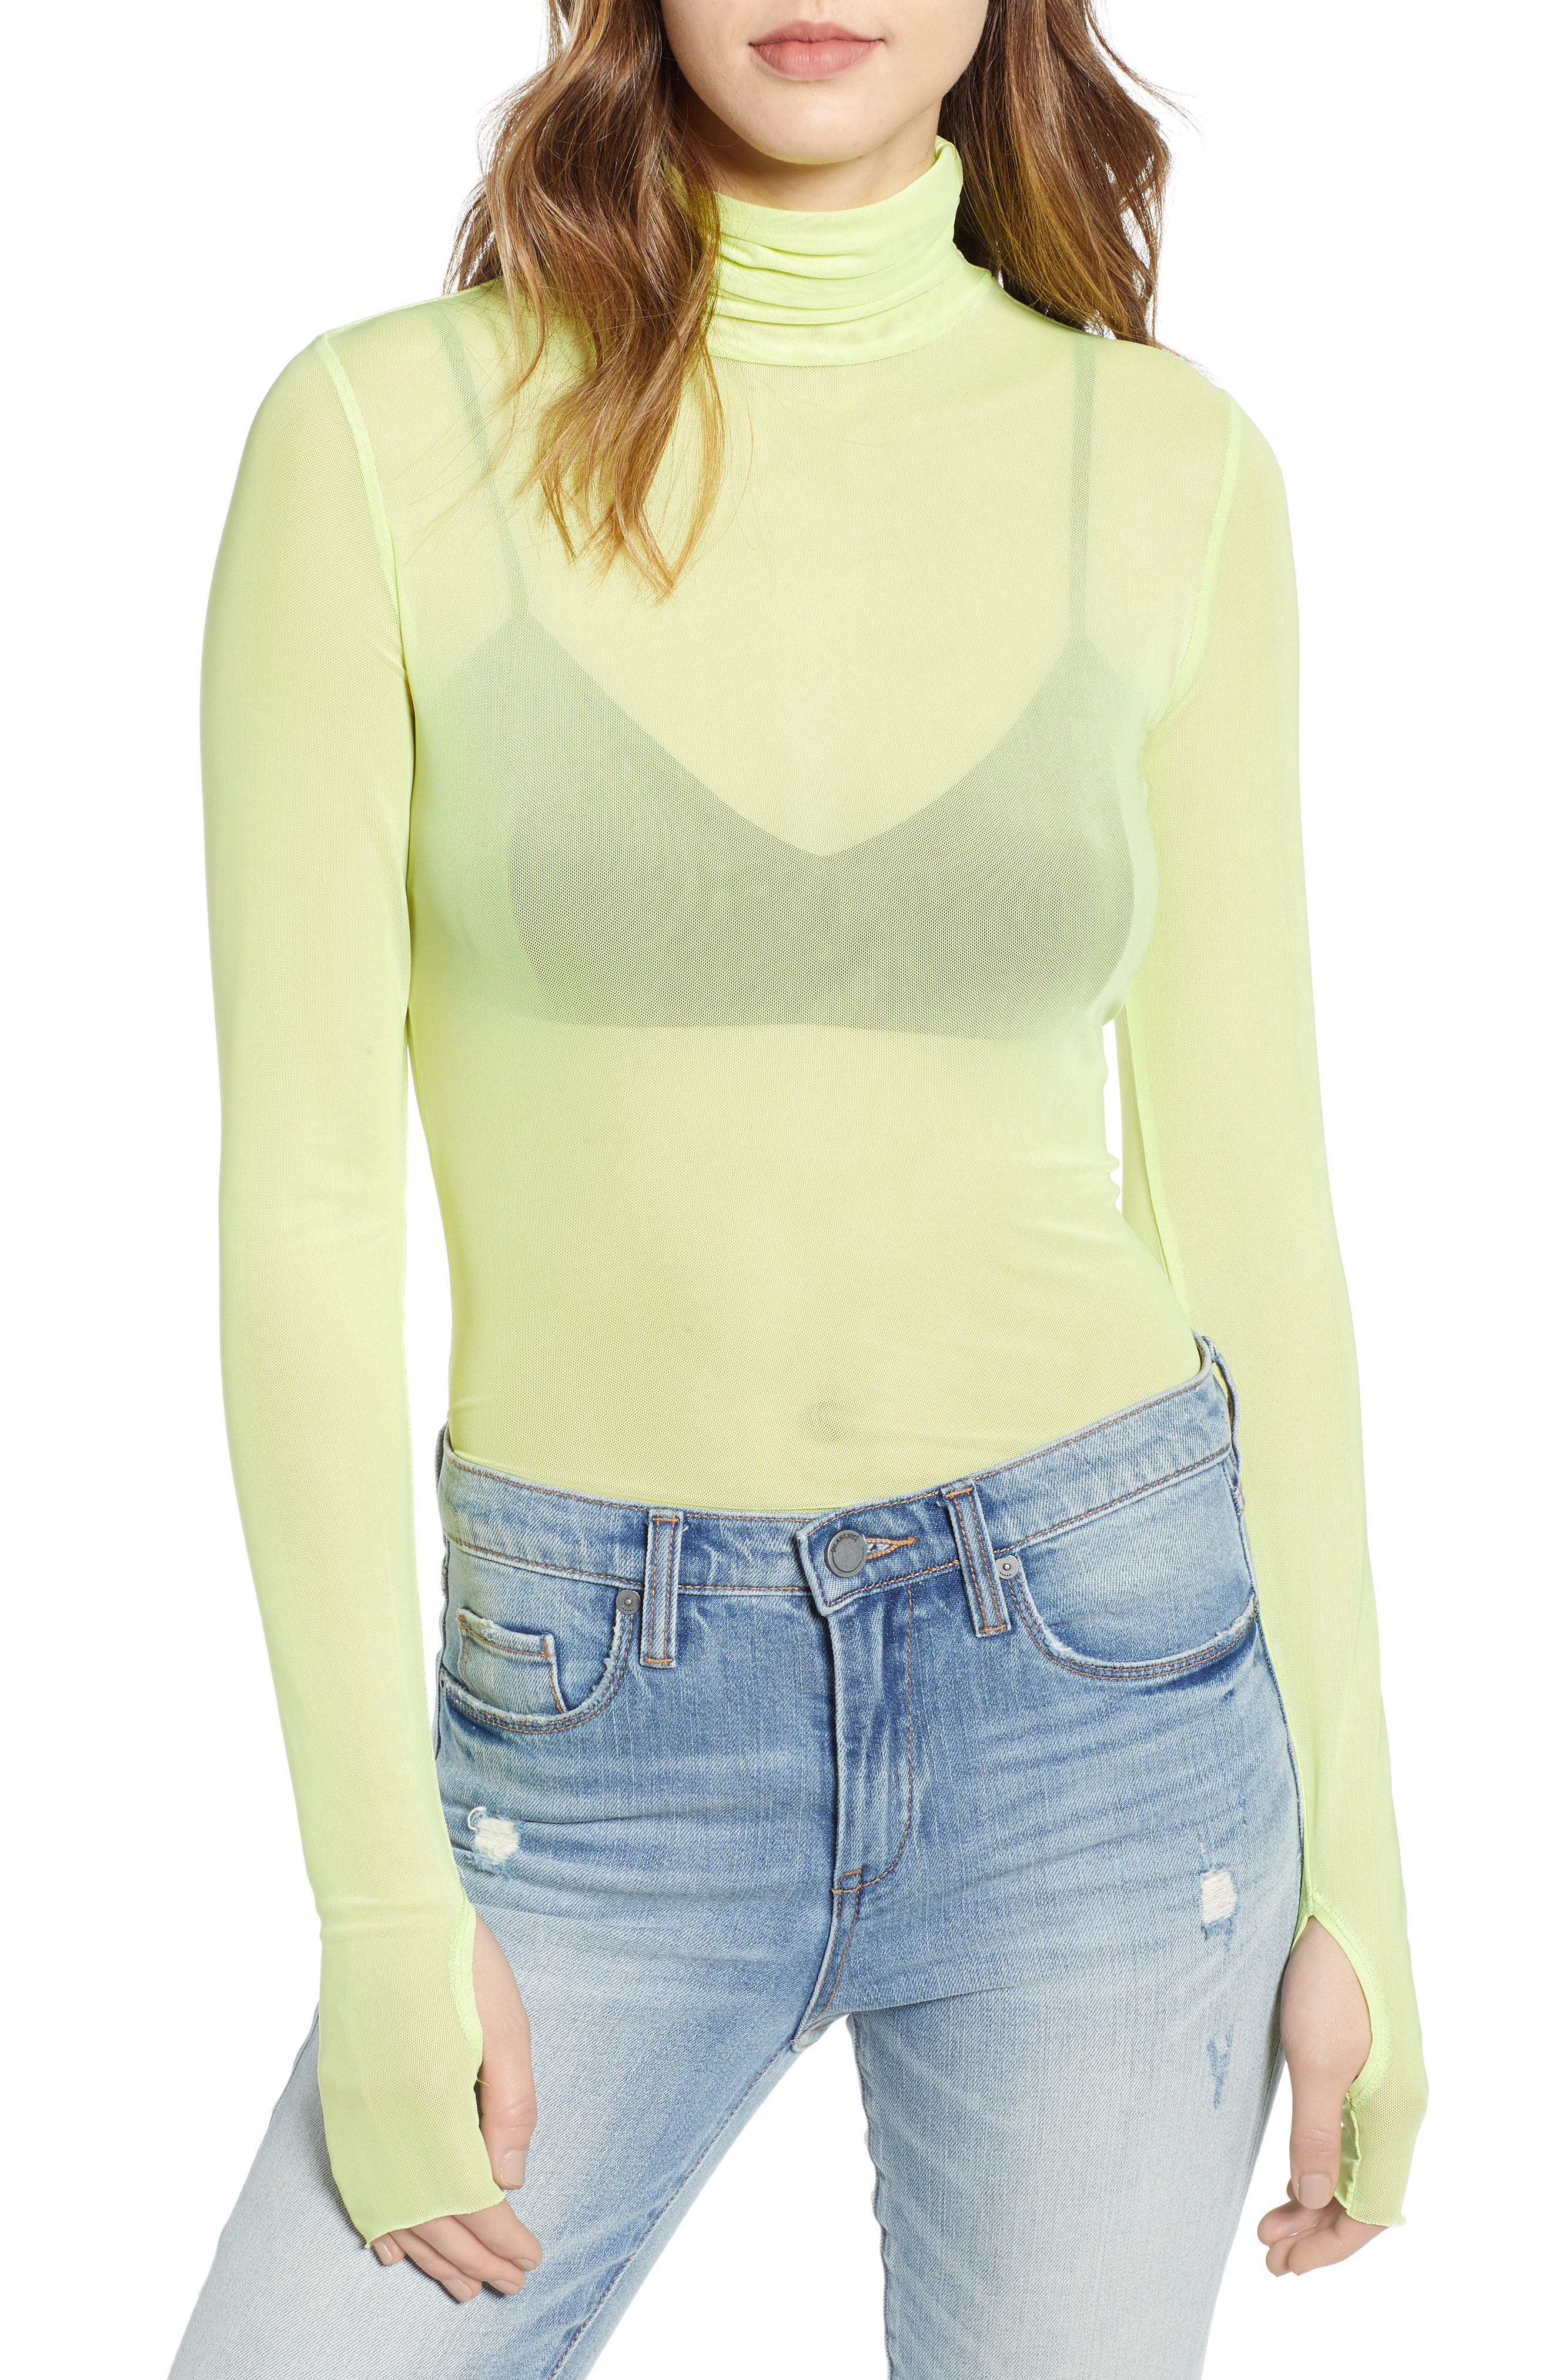 Zadie Semi Sheer Turtleneck,                             Main thumbnail 1, color,                             320